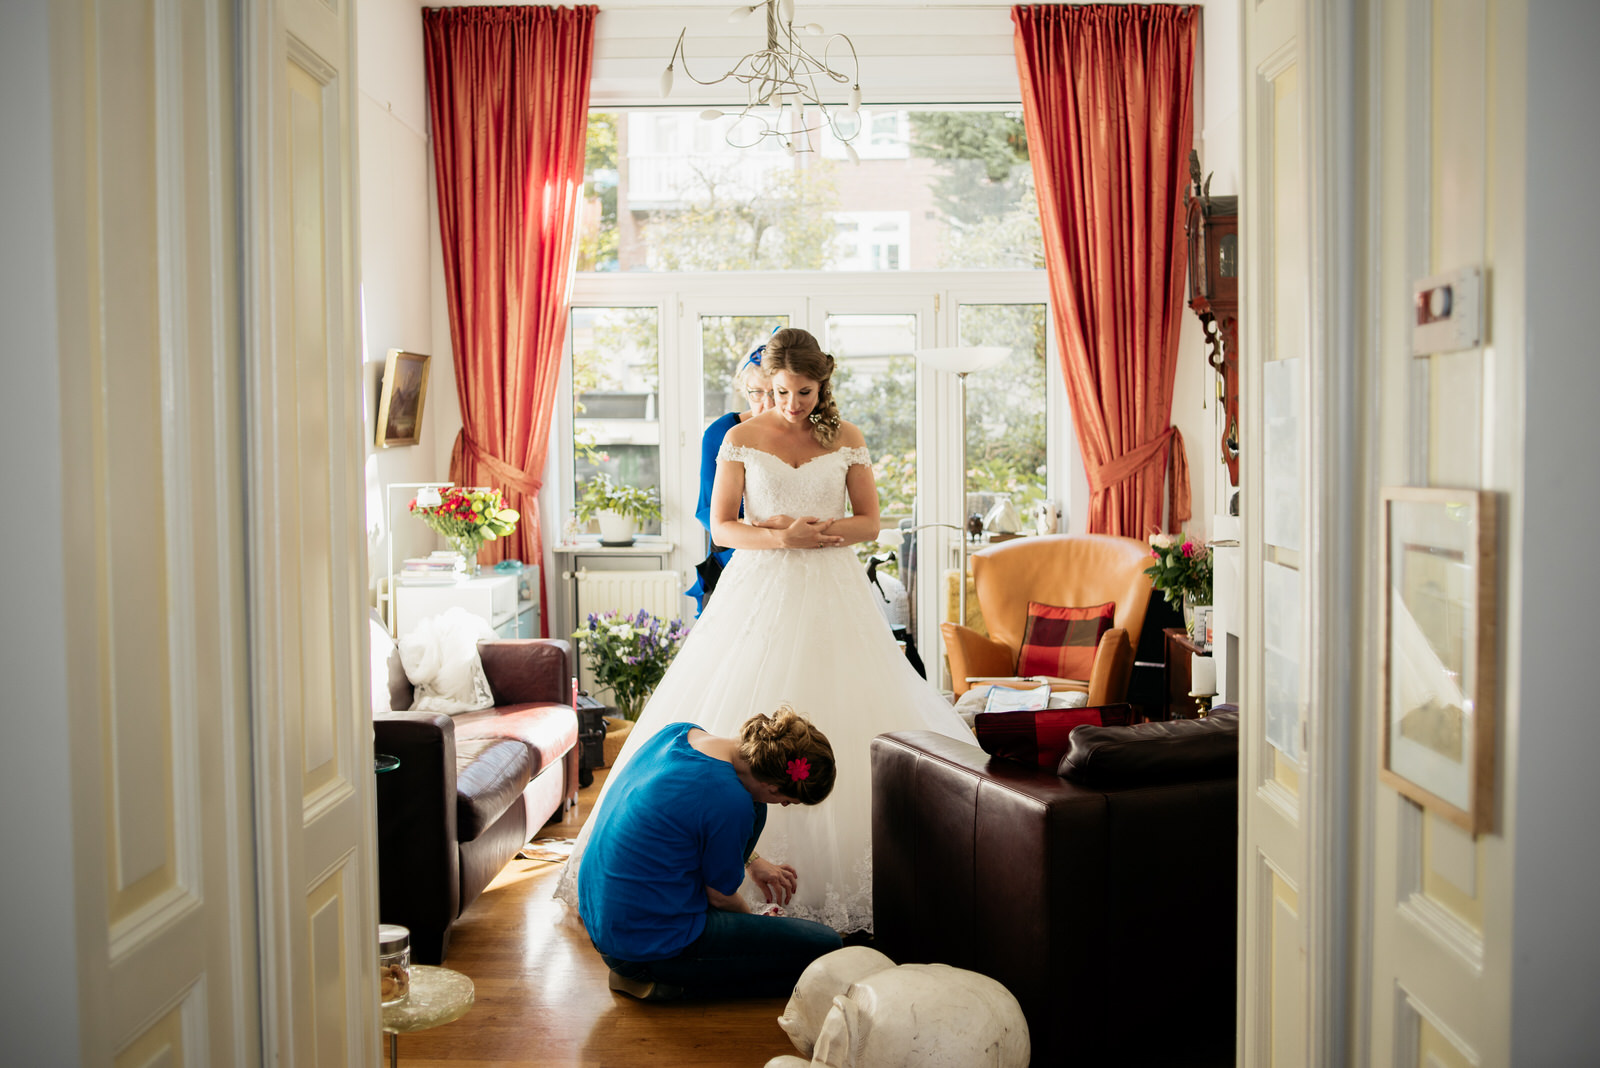 Getting ready wedding picture by wedding photographer Amsterdam